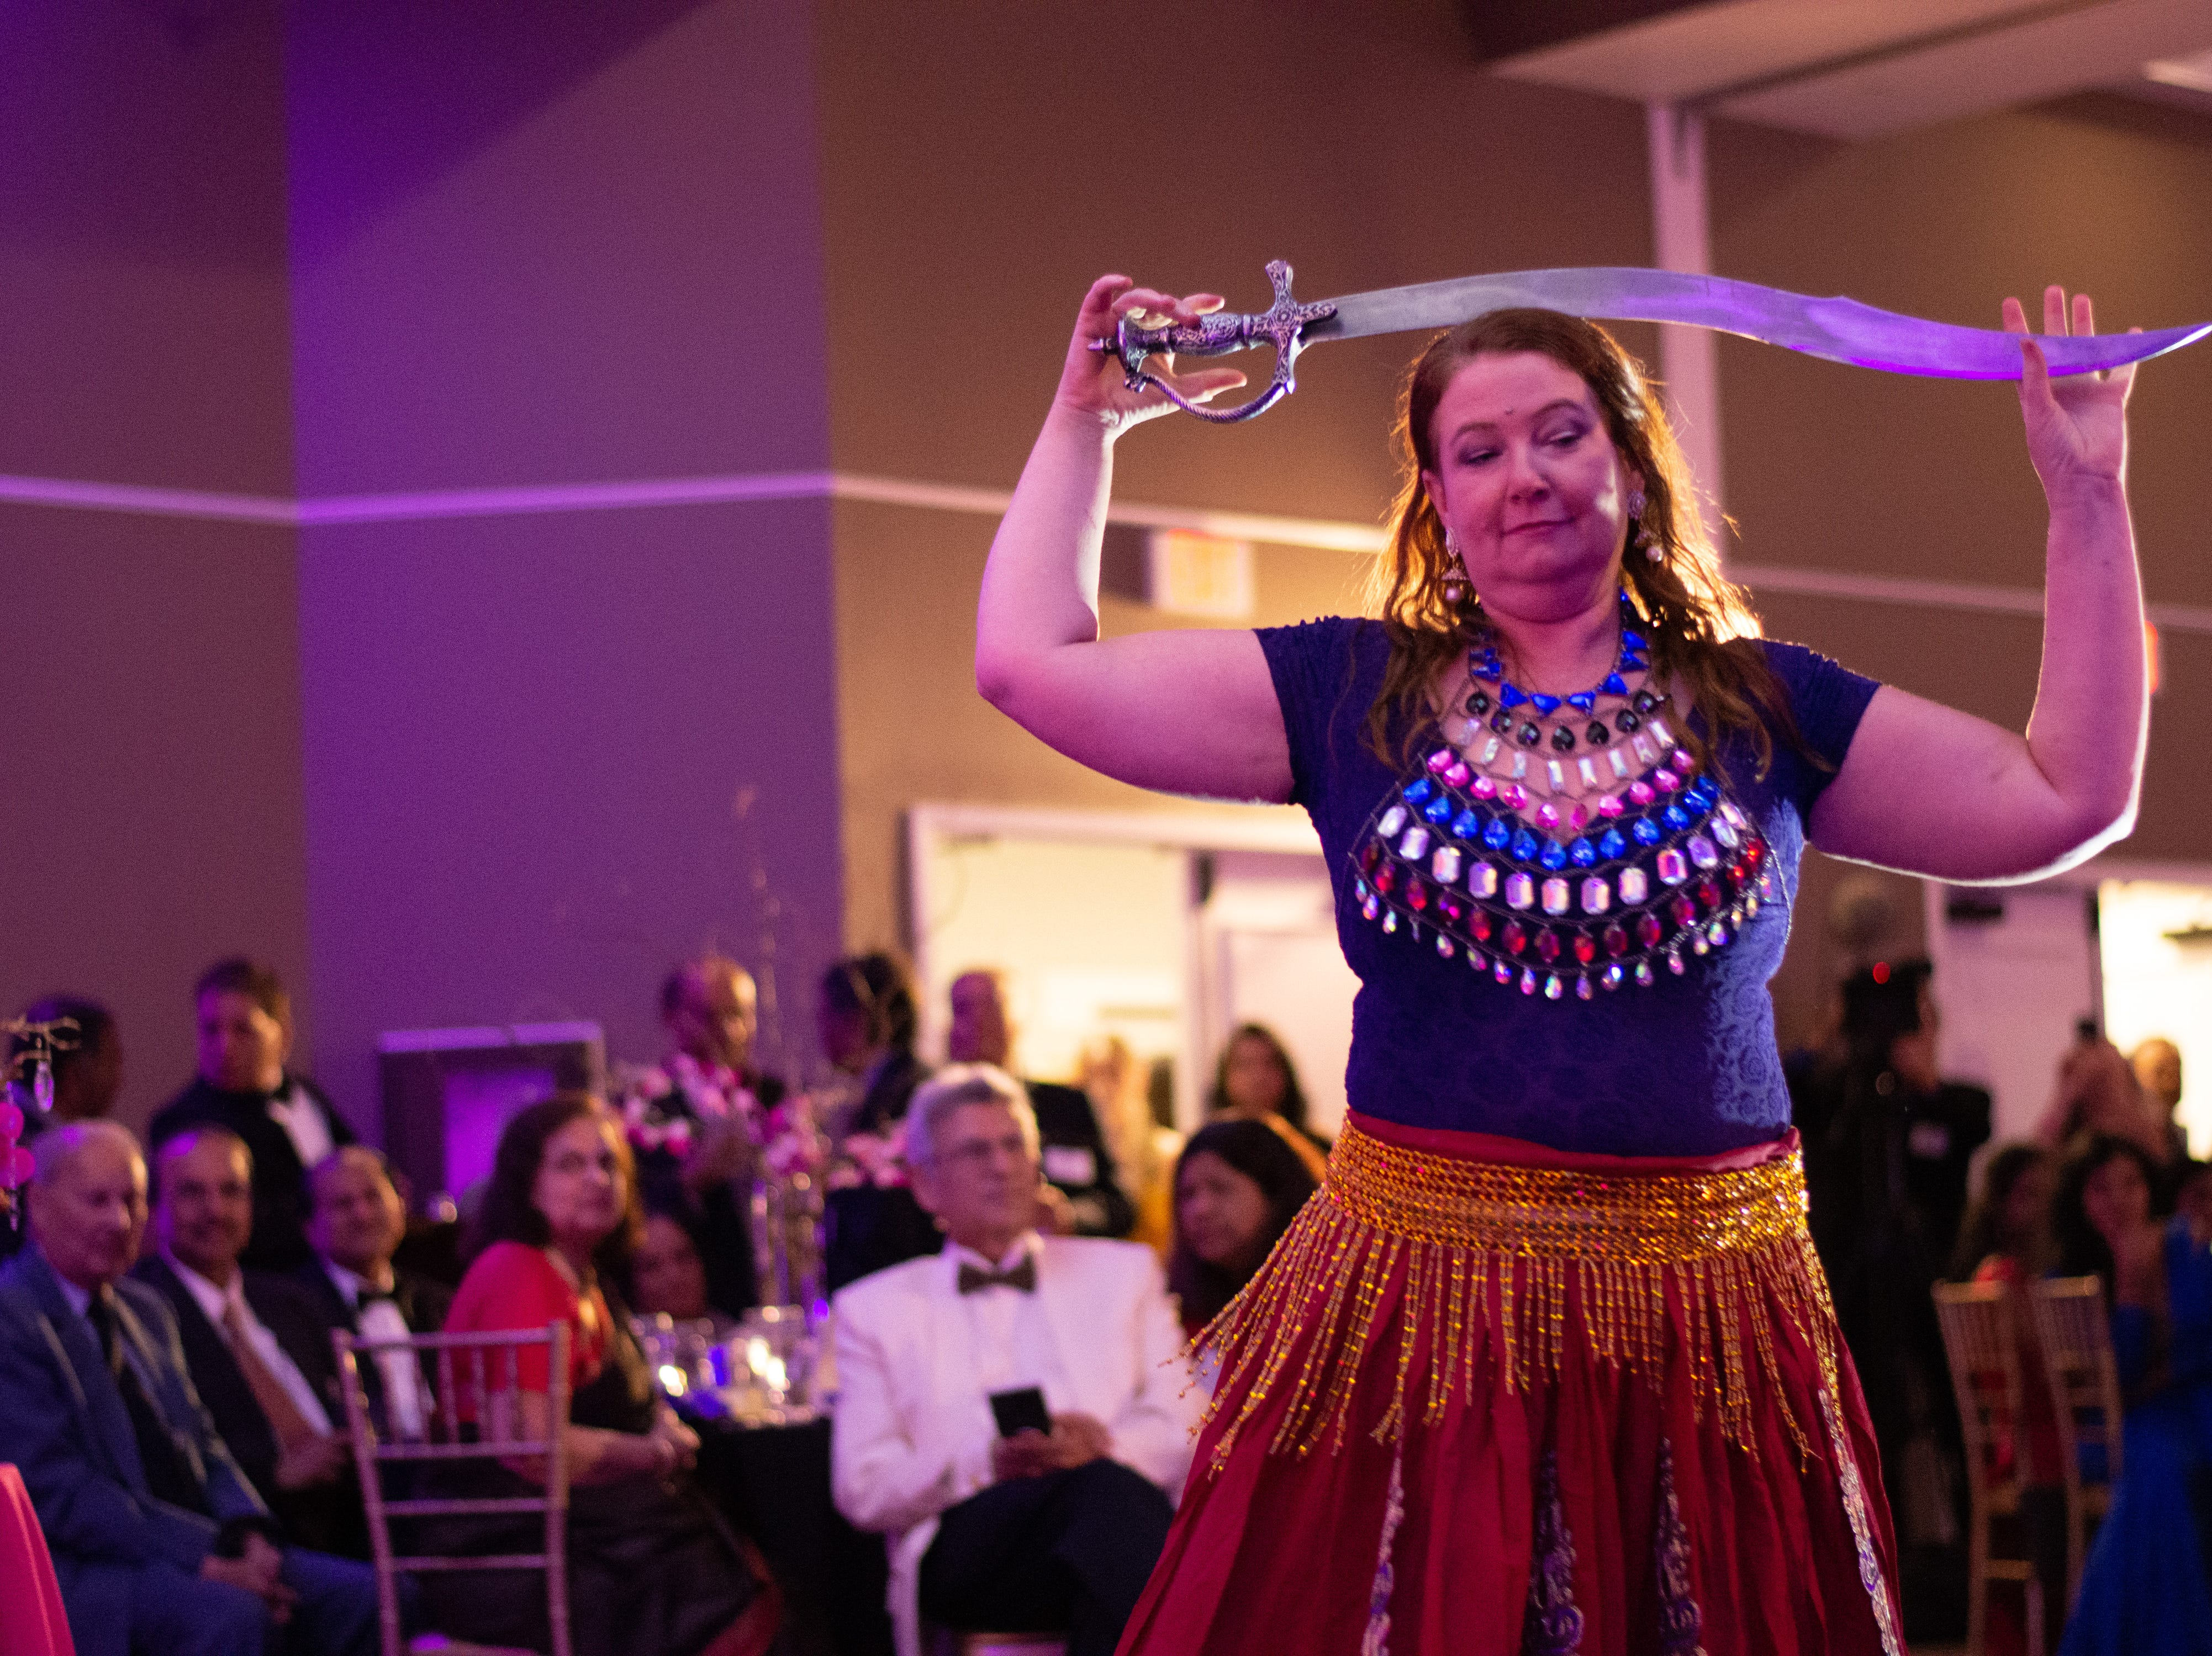 Performers from from the Bollywood Dance Academy perform at the 2018 BIMDA annual dinner and awards ceremony.